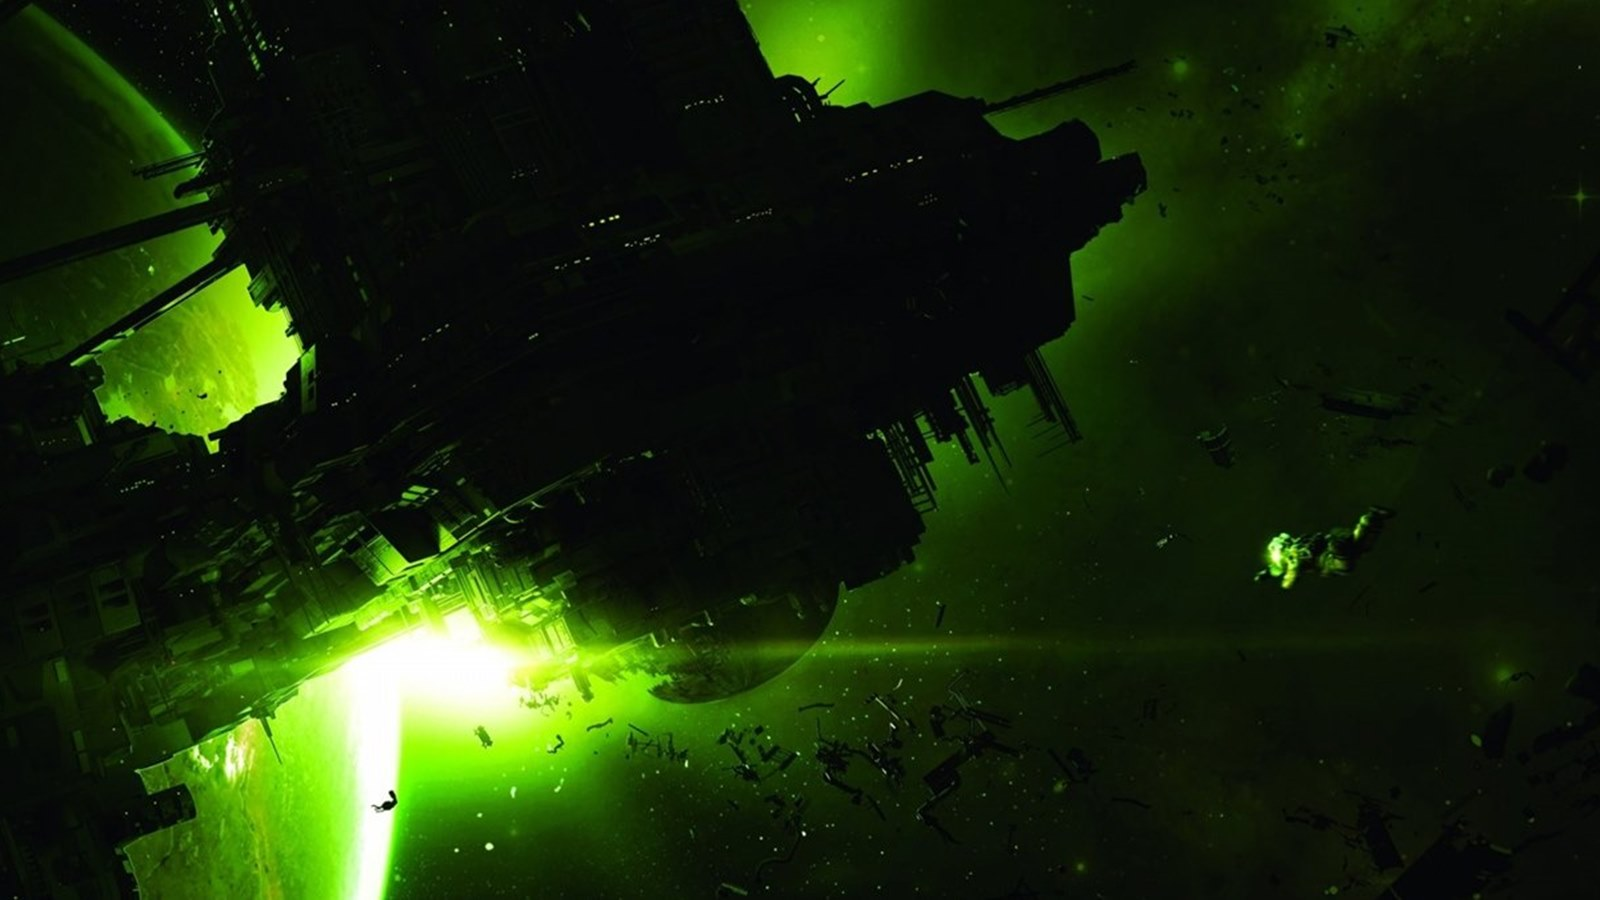 Alien isolation background